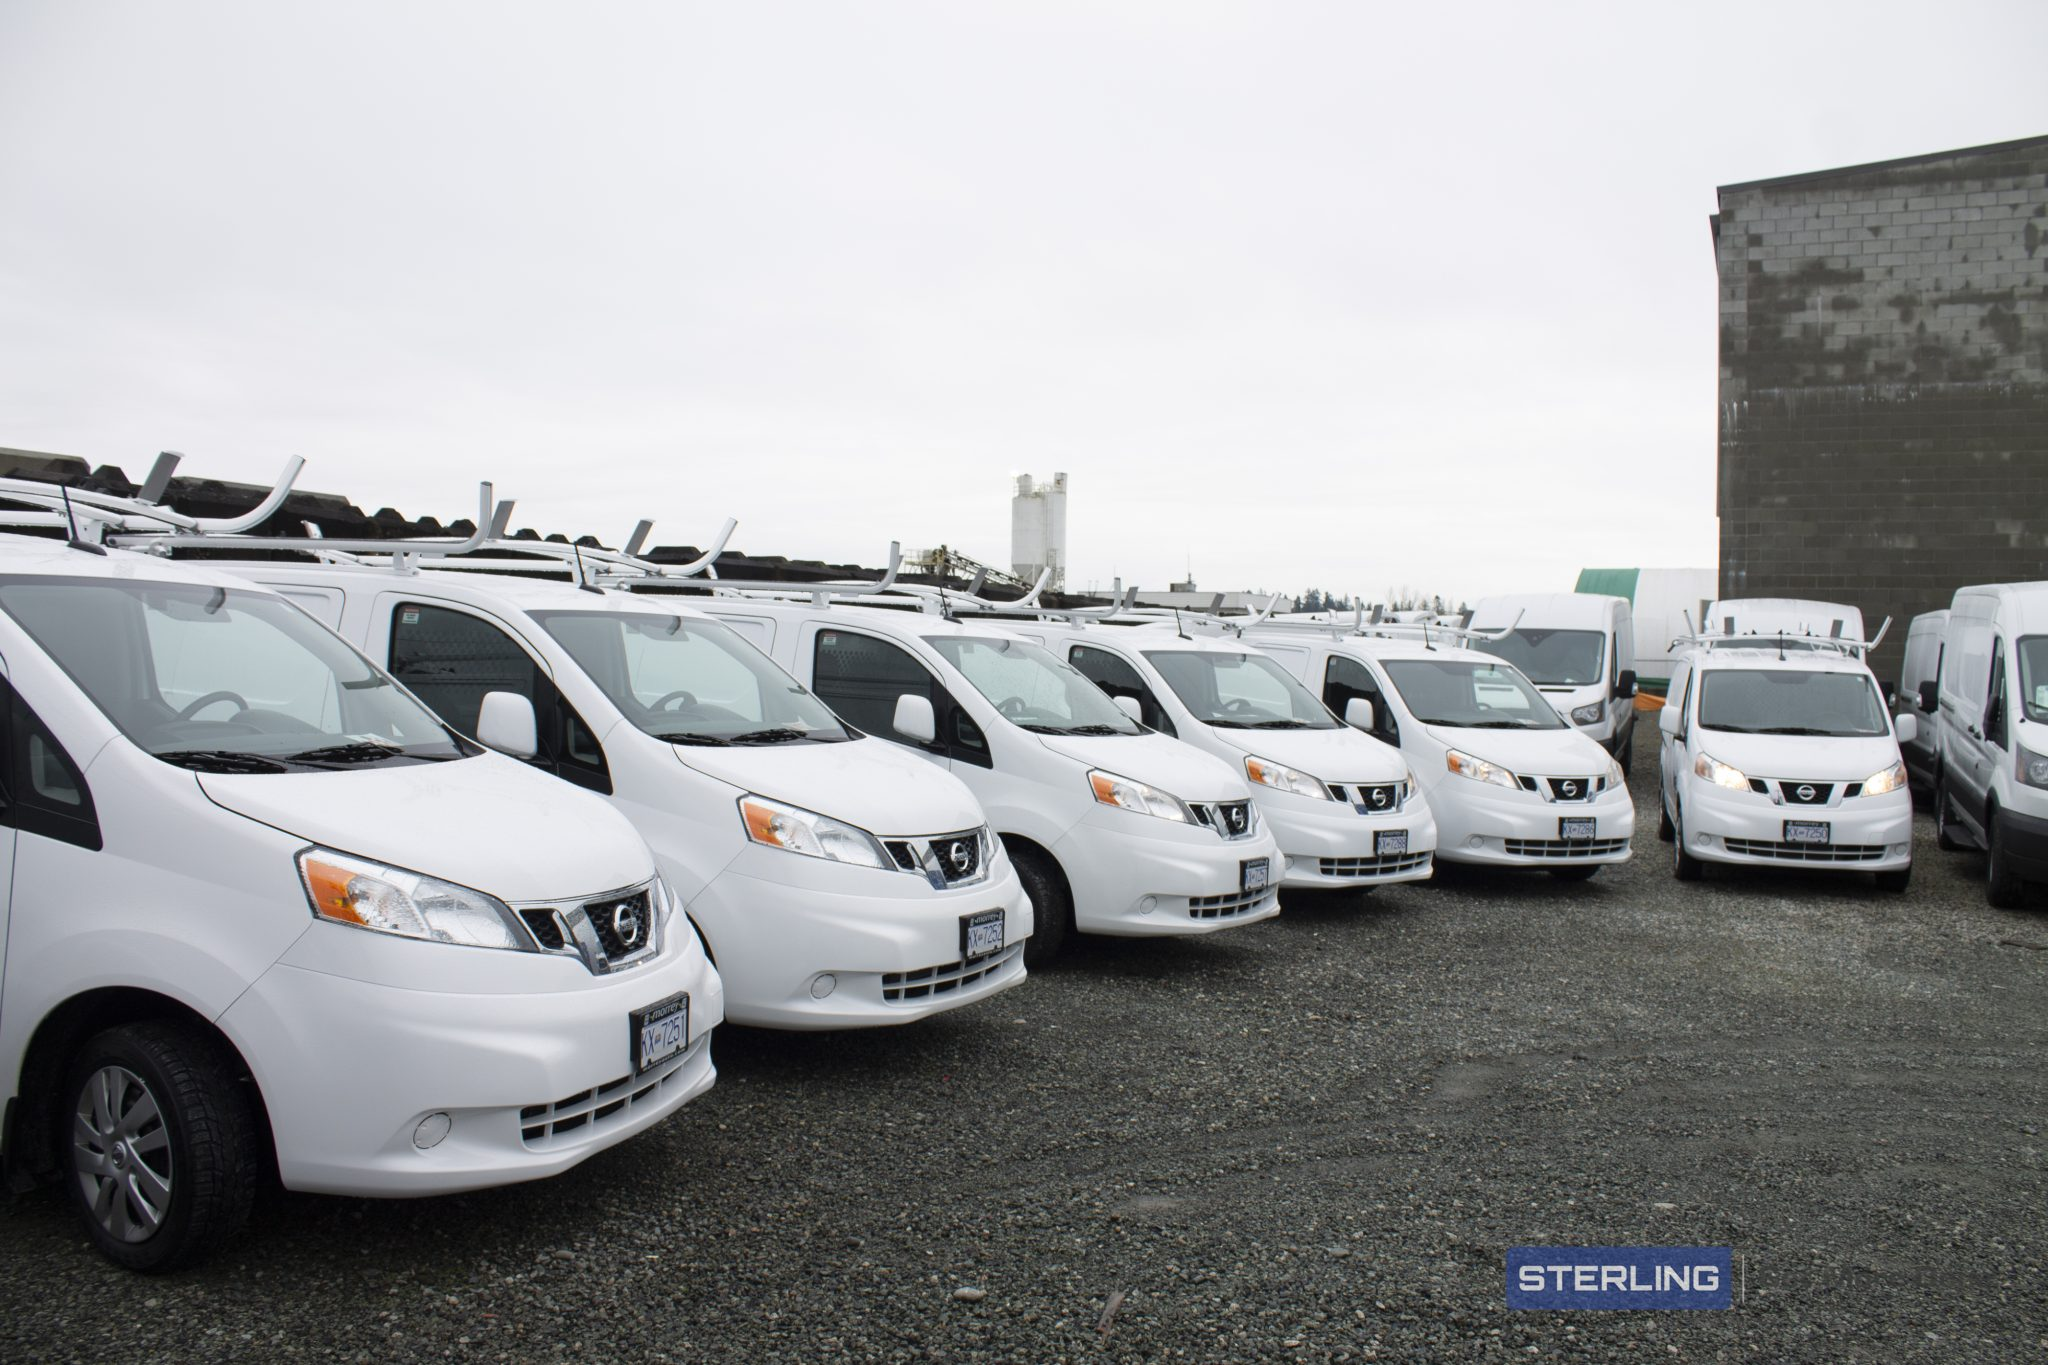 nissan fleet providing an elite, prefessional image and building employee retention